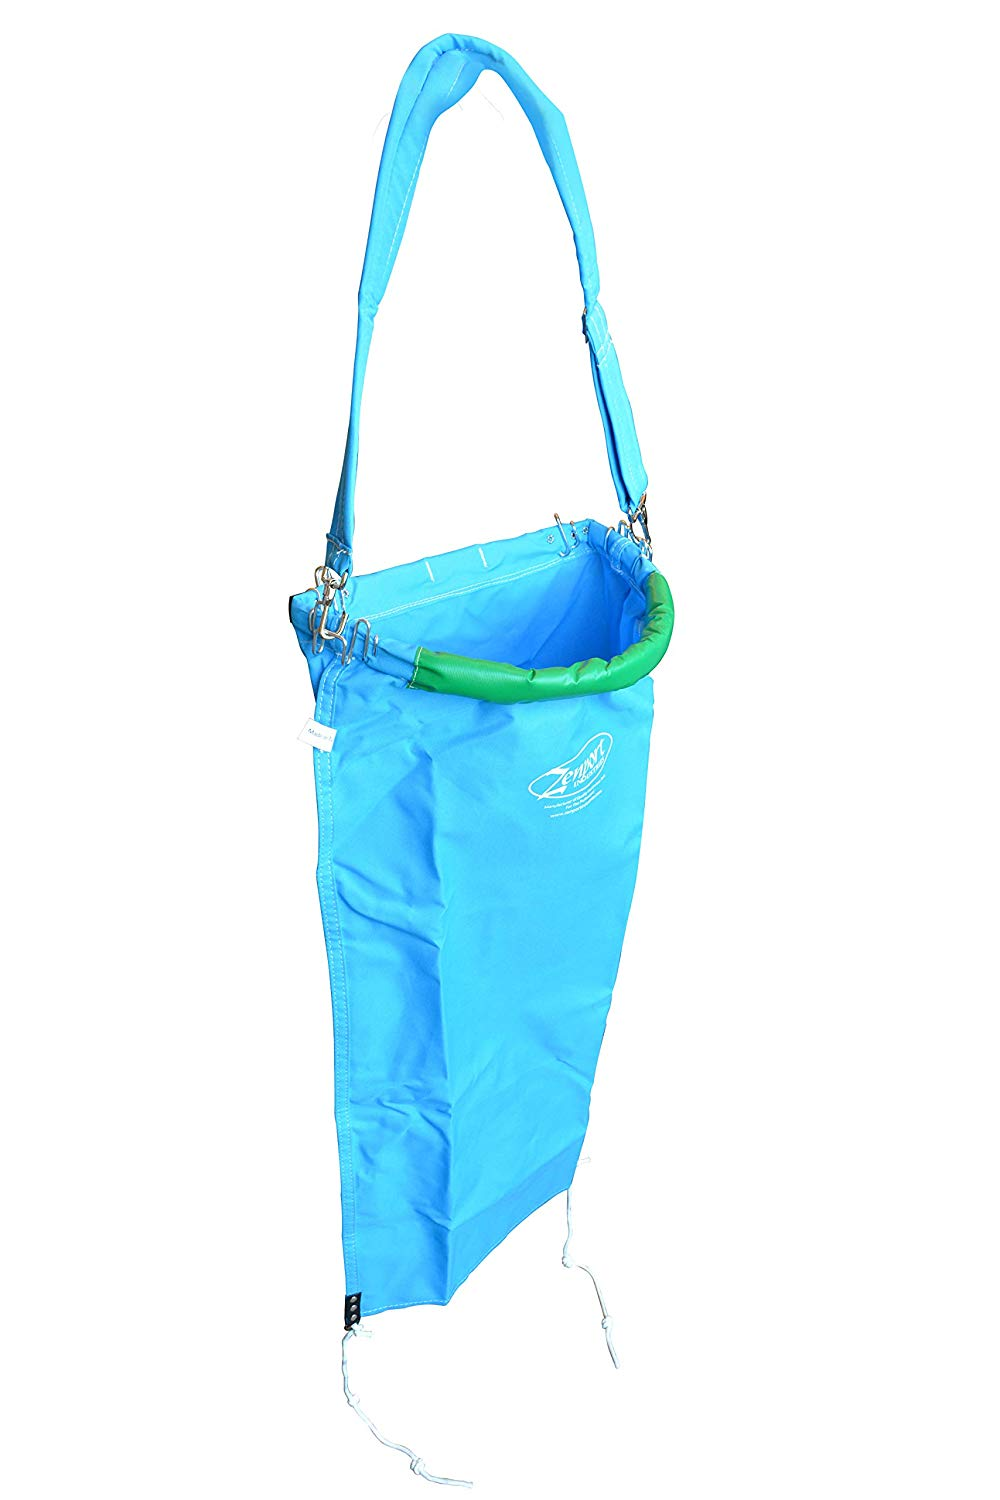 Zenport Picking Bag AG411 AgriKon 40-Pound Sling Soft Shell Harvest Fruit, Pear/Apple Picking Bag